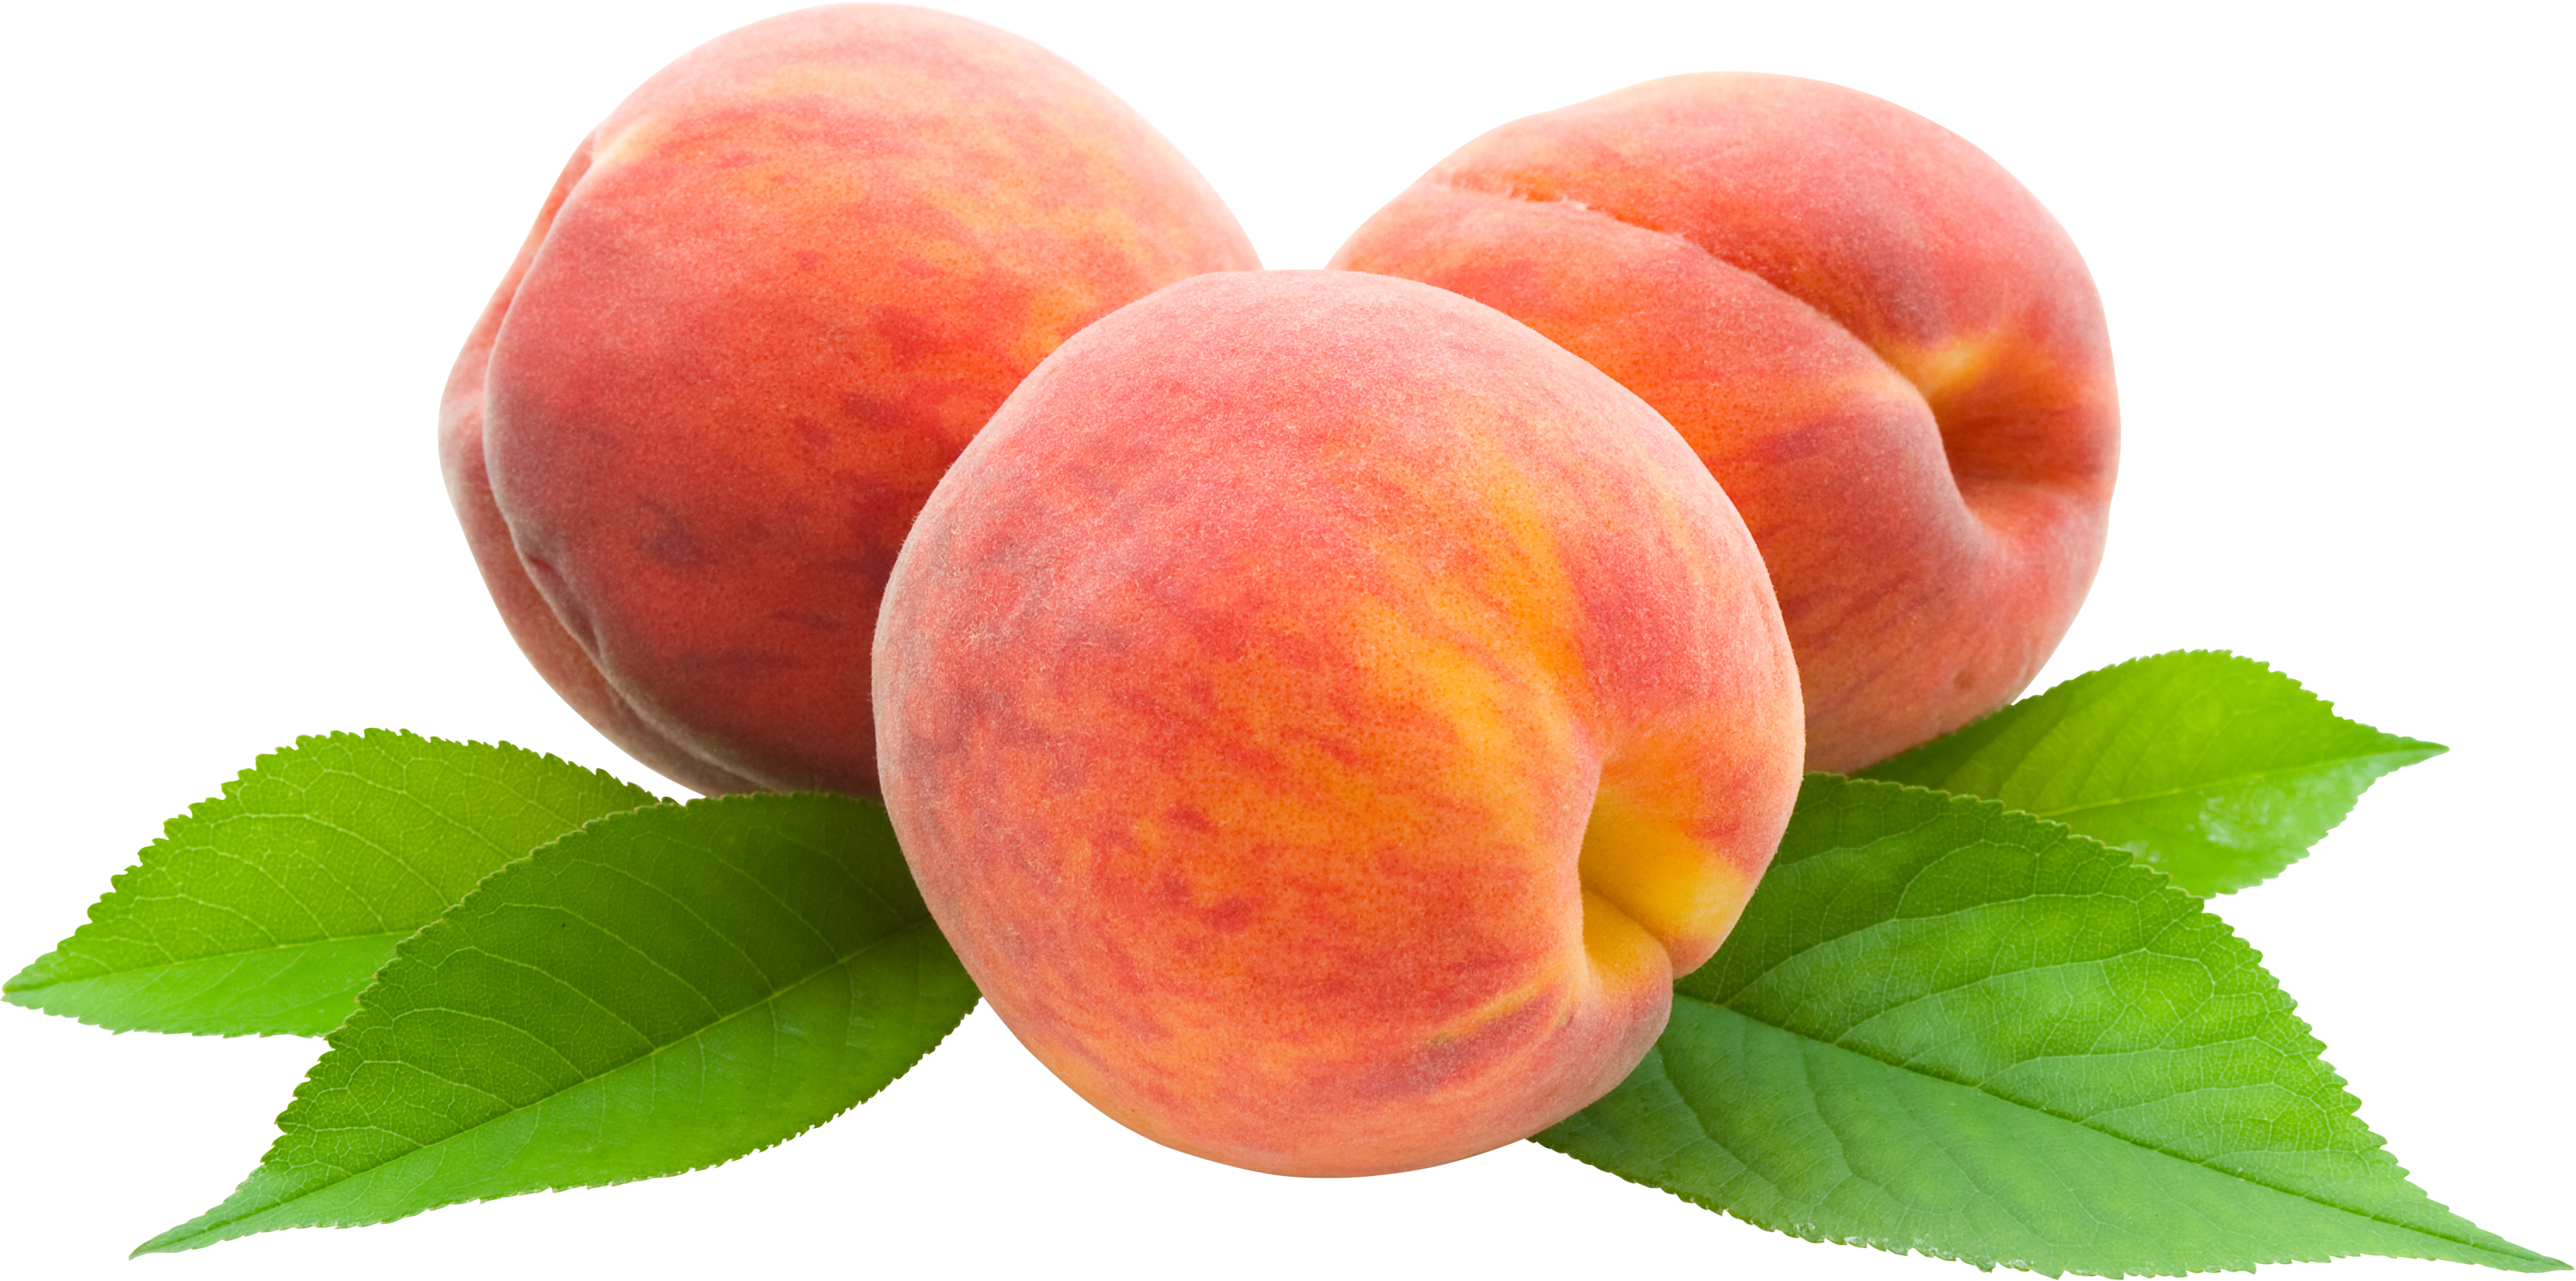 Peach Png Image In This Page You Can Download Png Image Peach Png